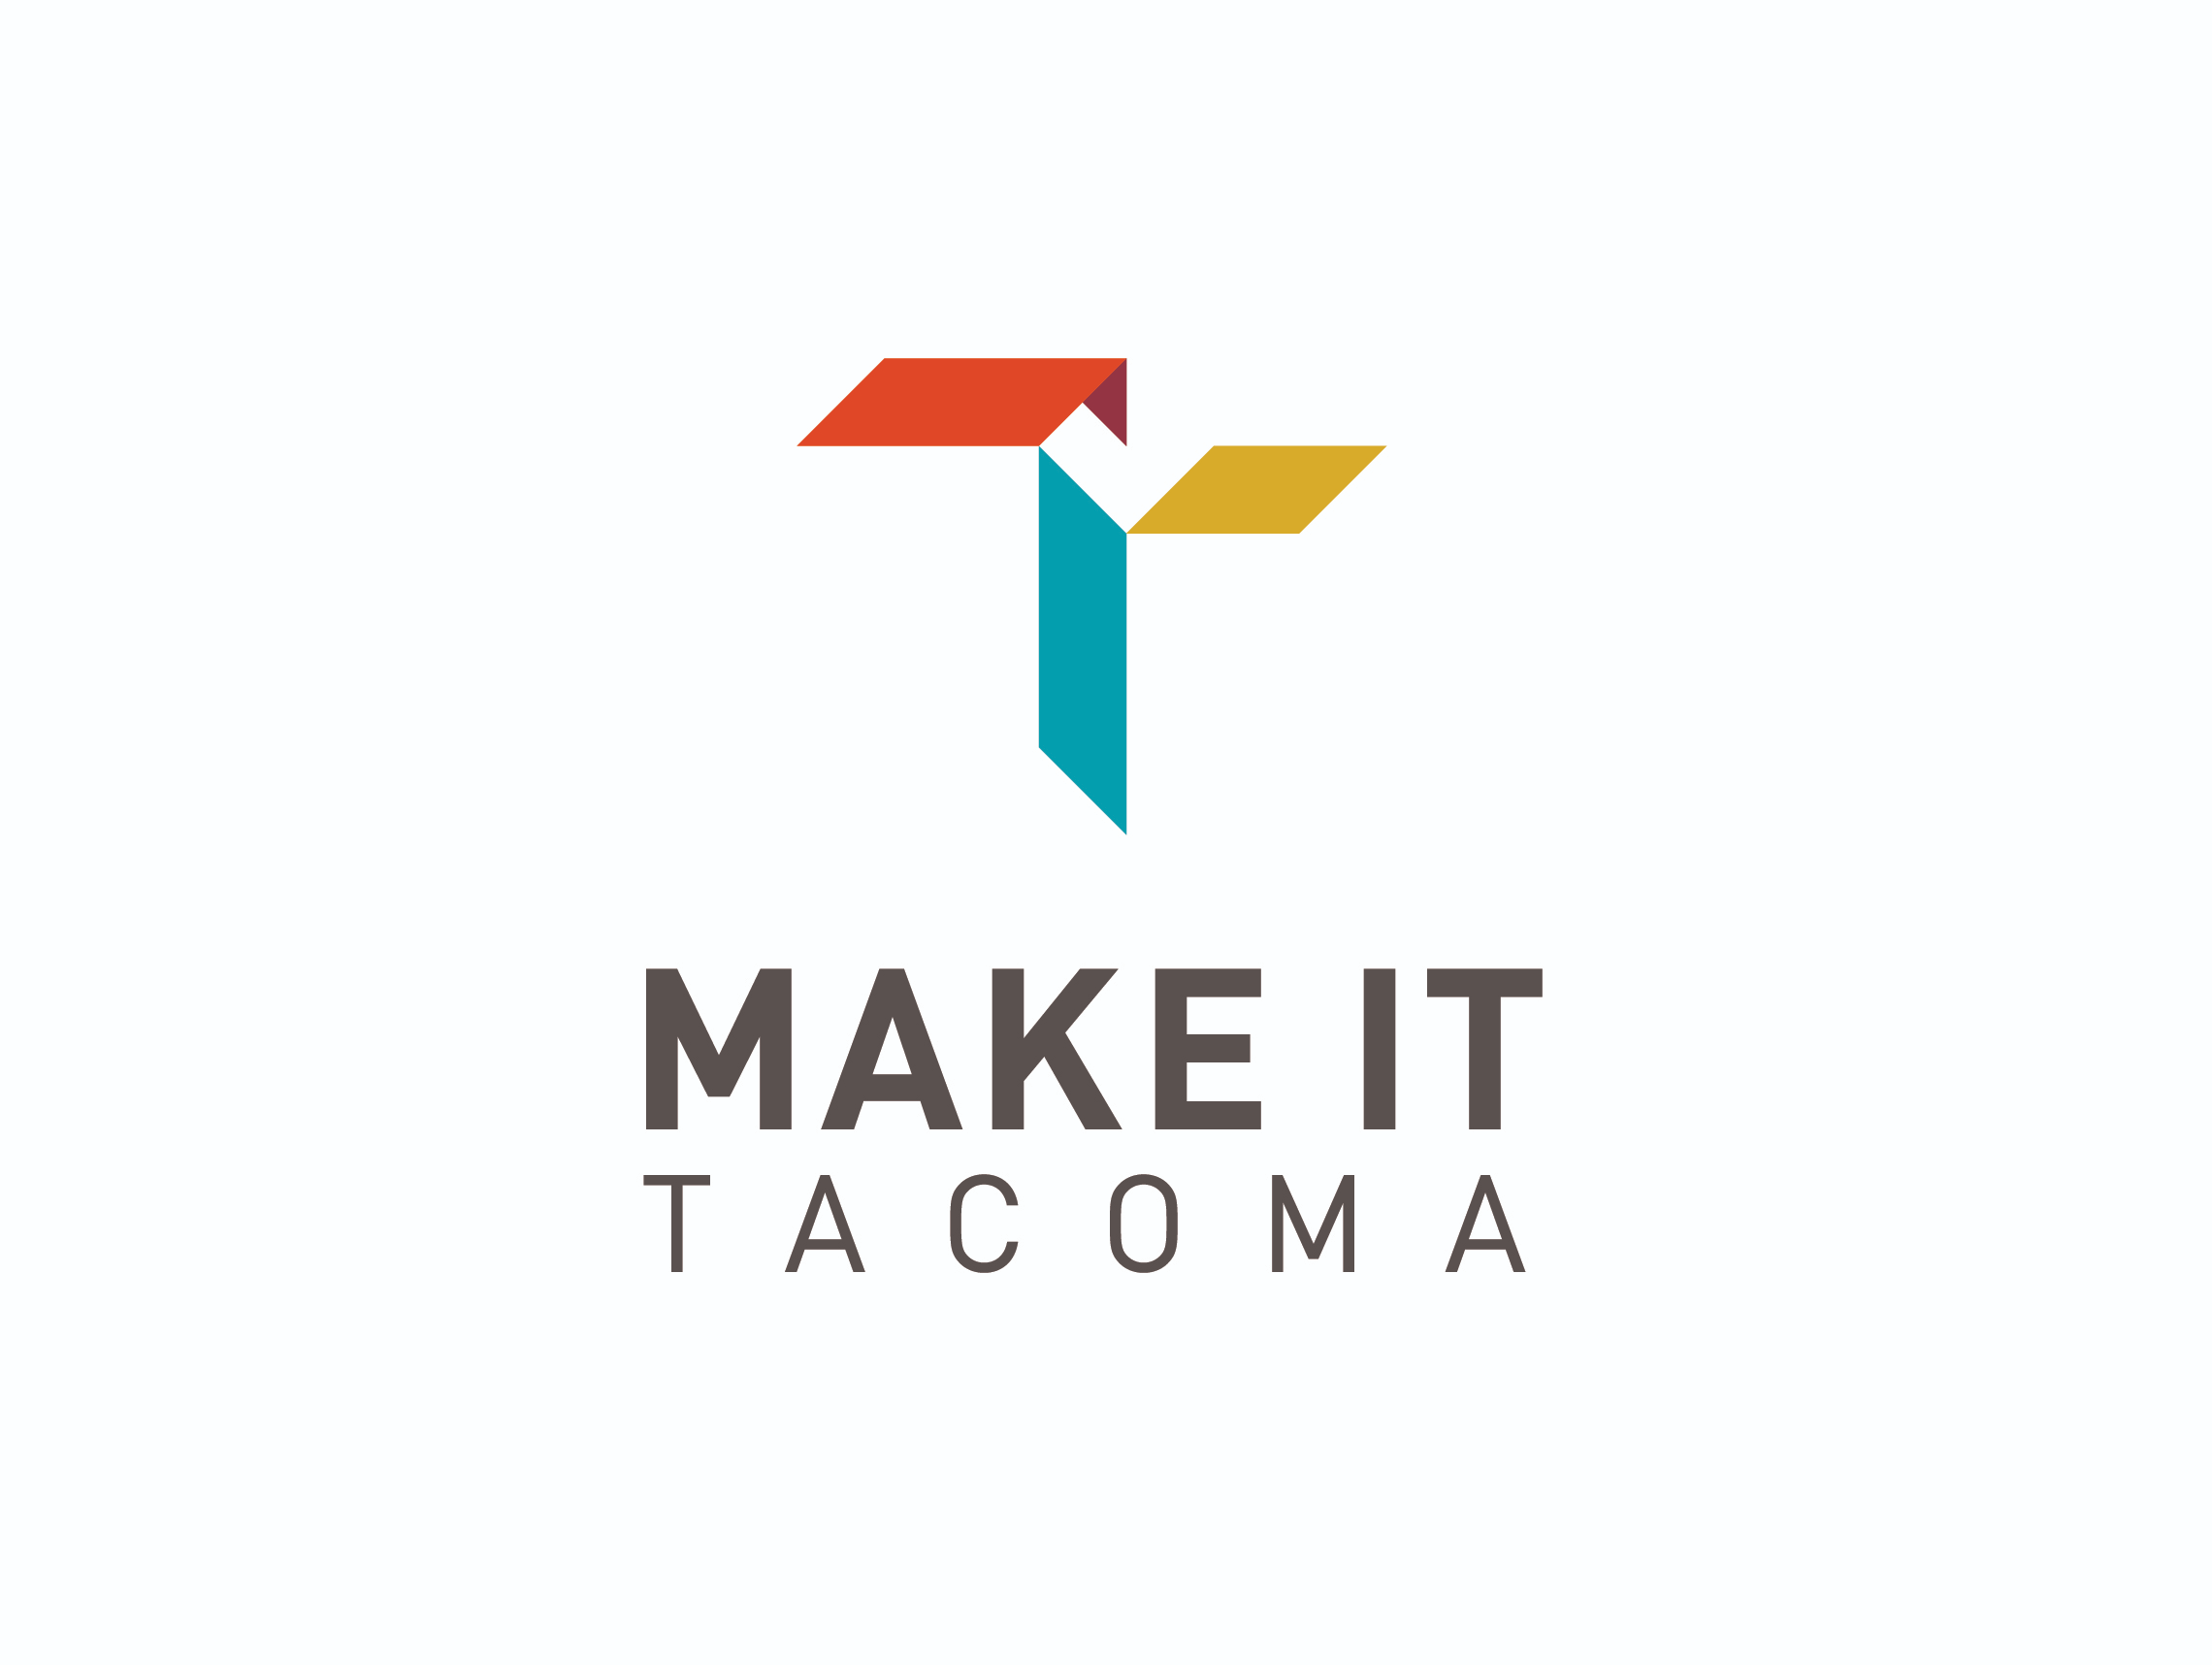 make it tacoma